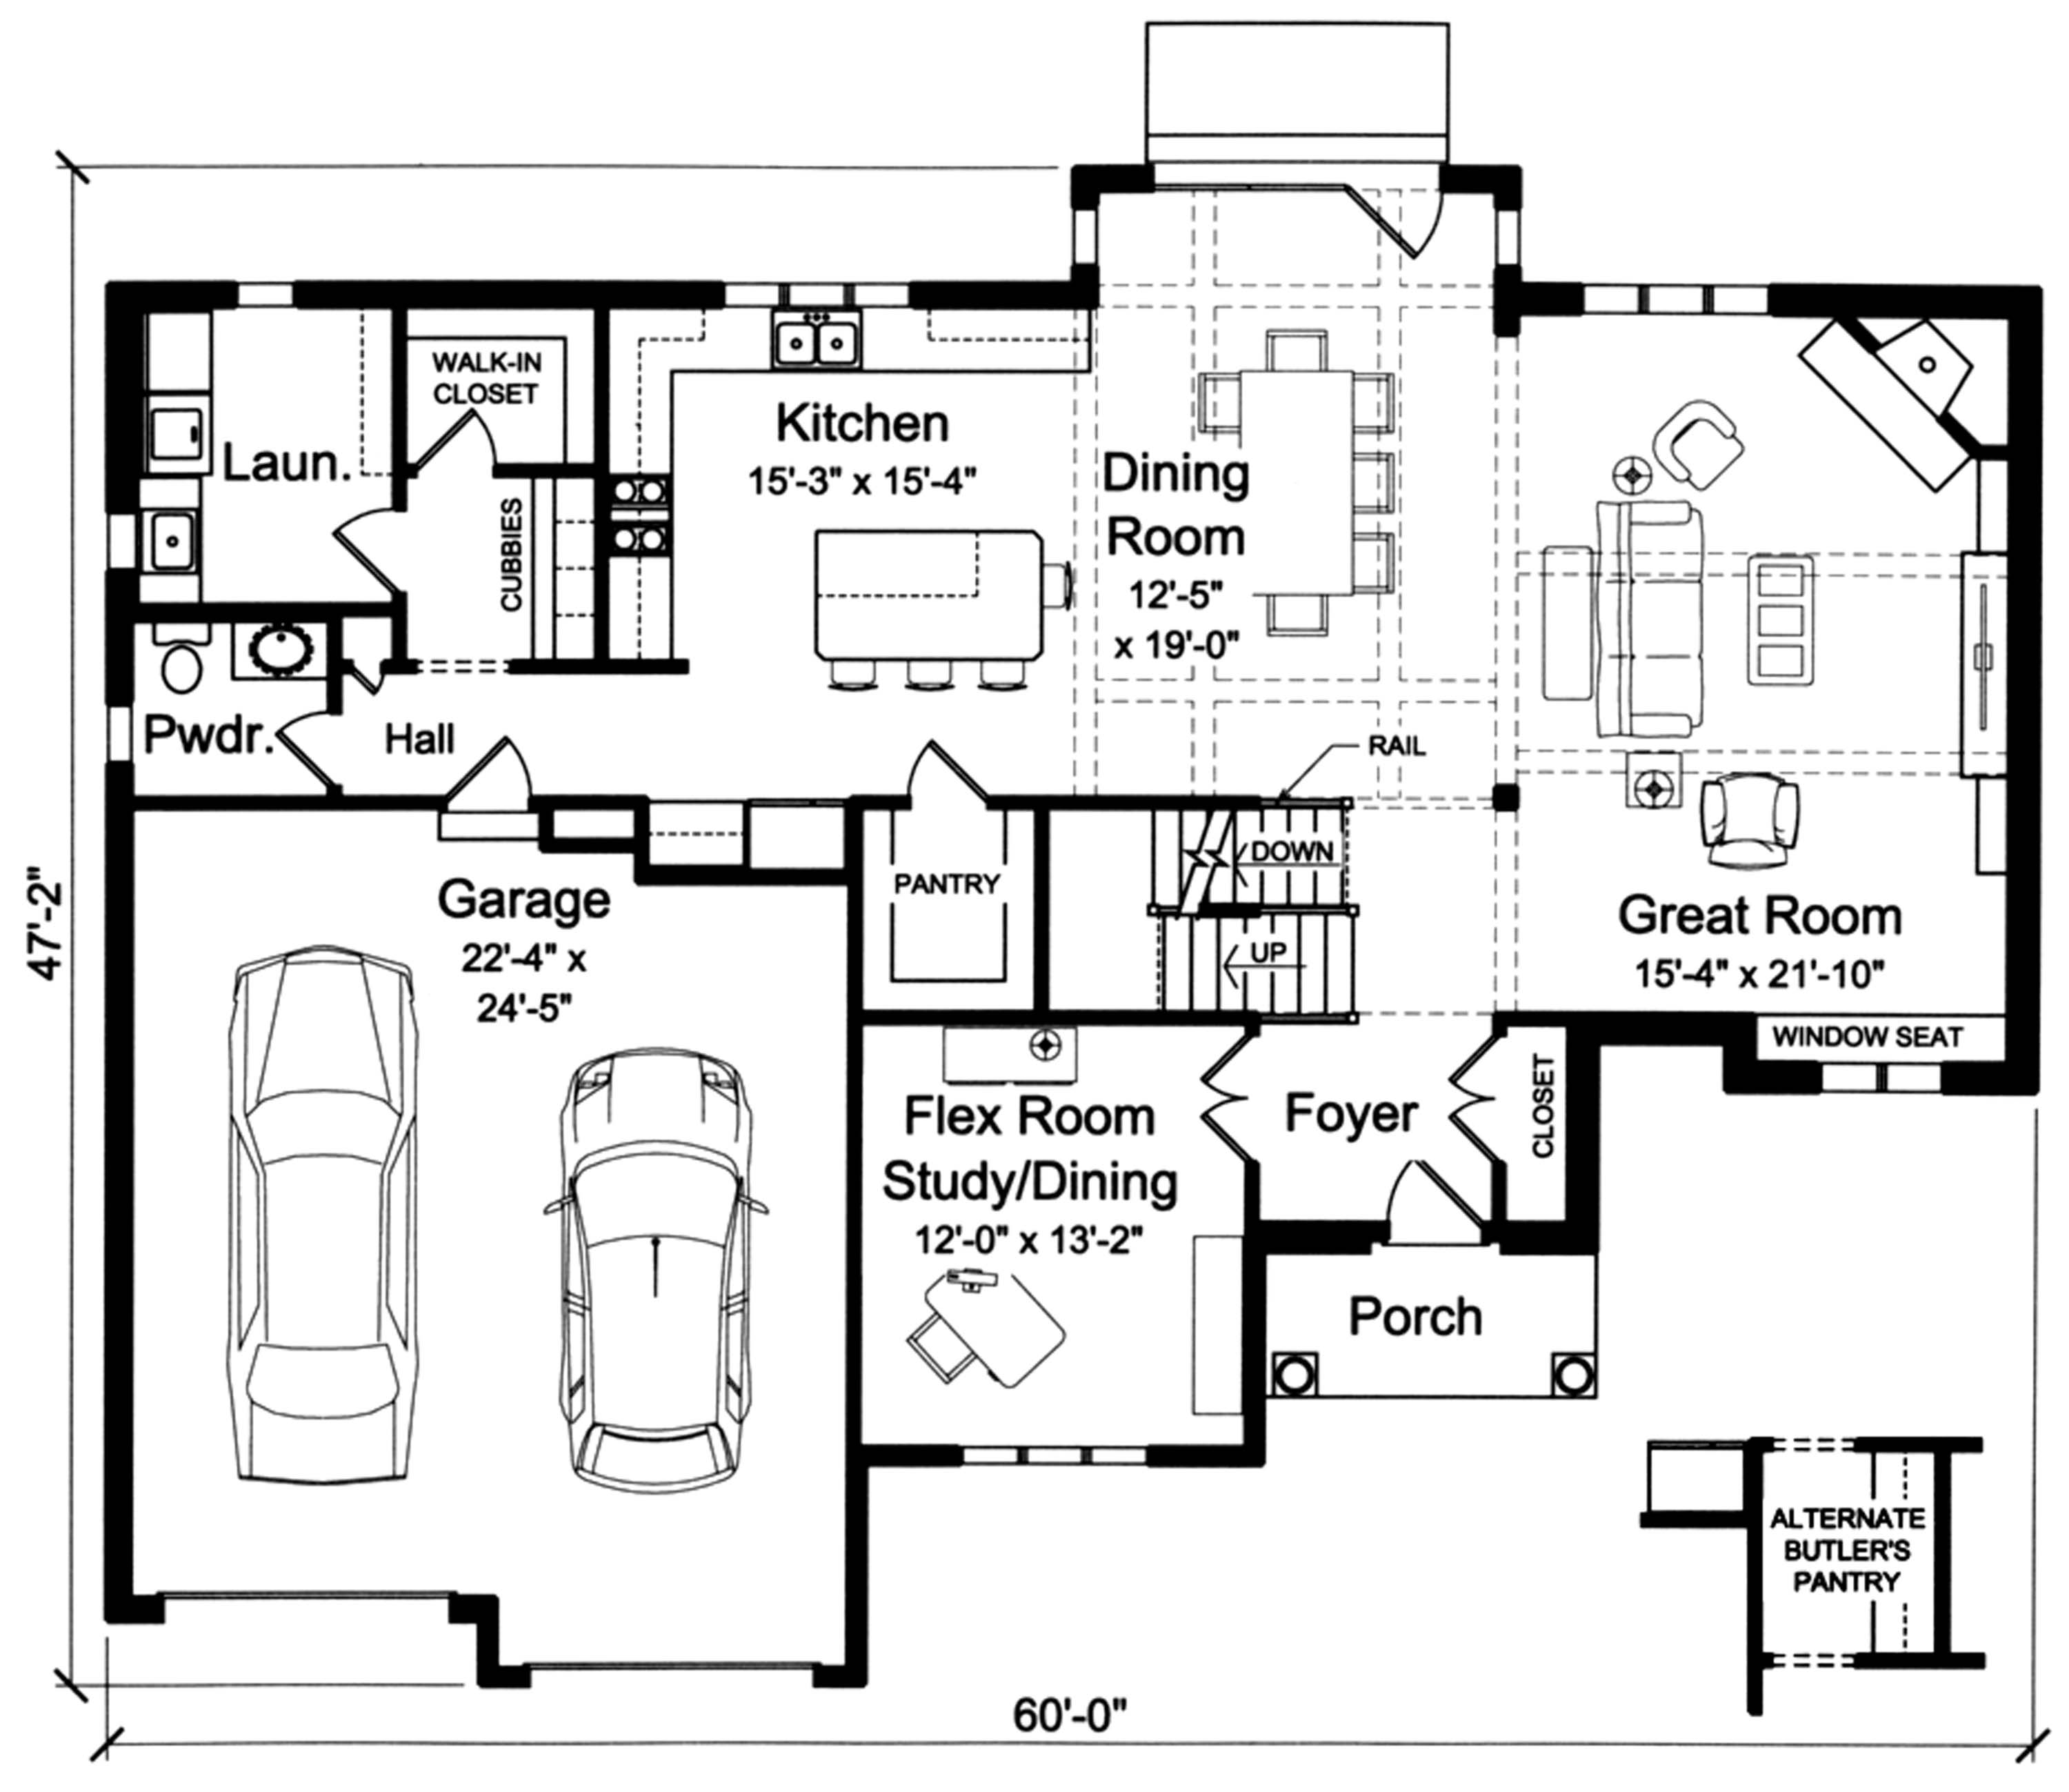 kitchen great room floor plans country house plan 169 1119 4 bedrm 2938 sq ft home 8114